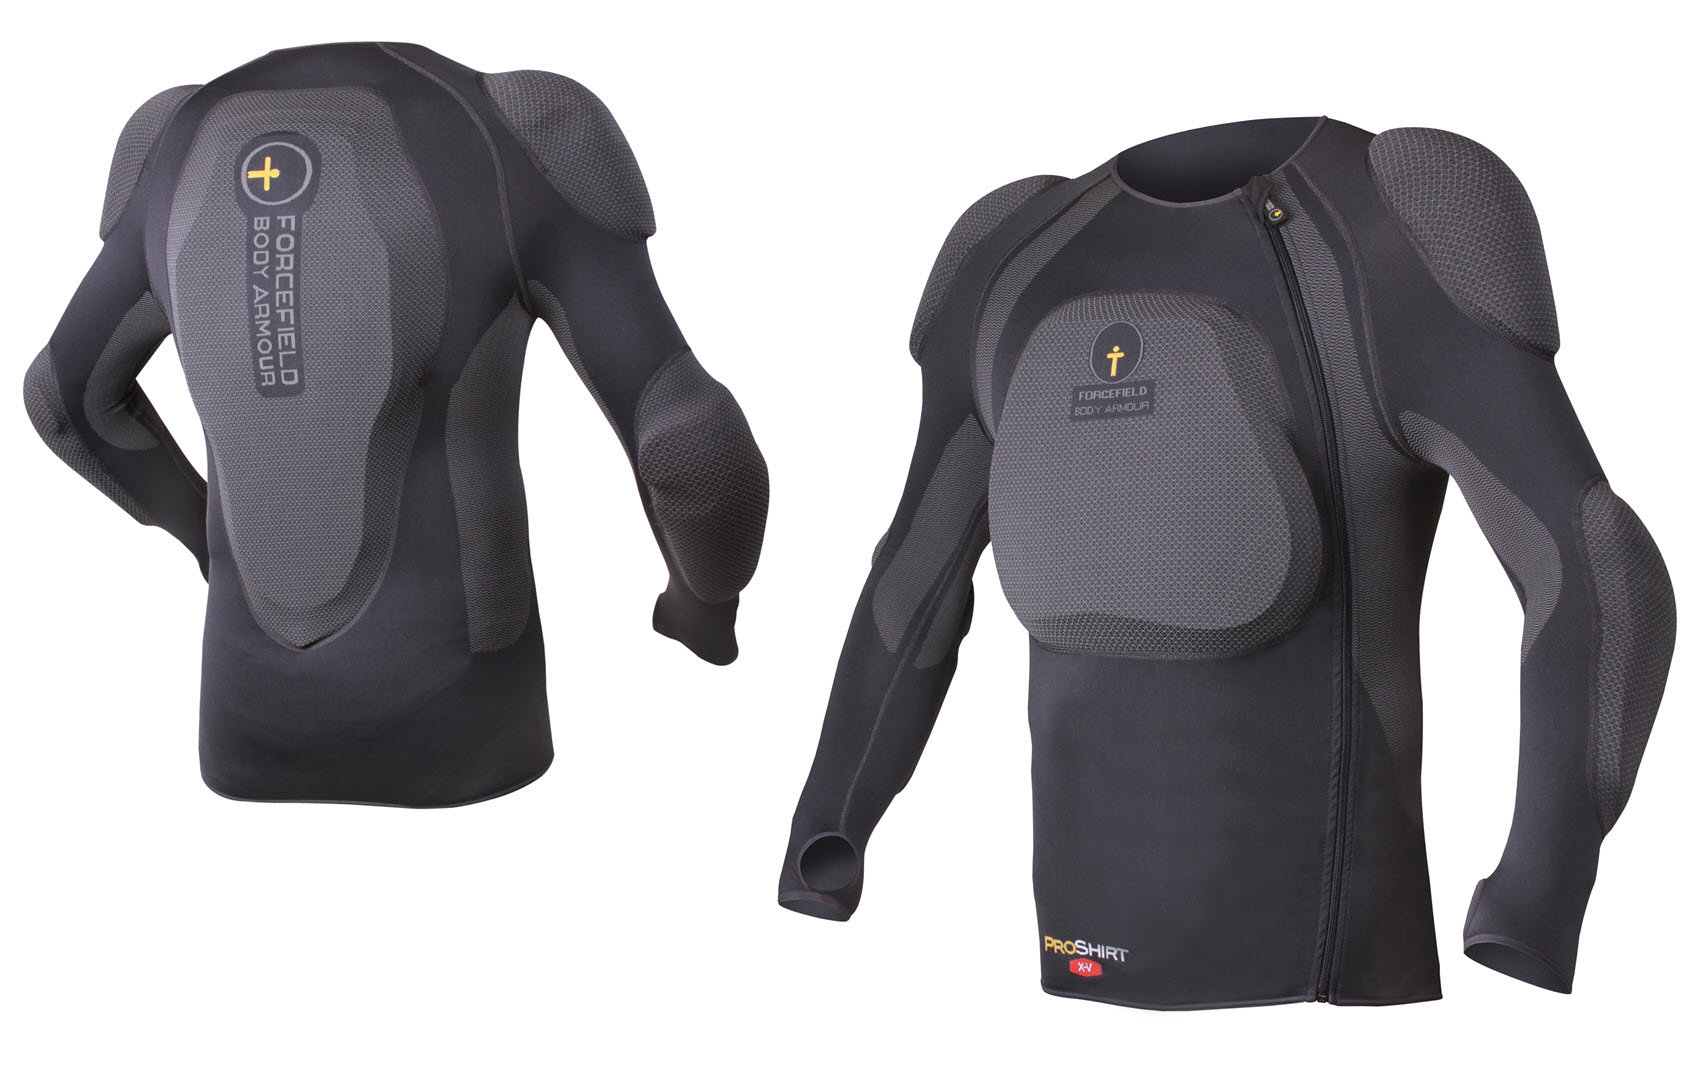 forcefield snowboard body armour pro shirt x v back. Black Bedroom Furniture Sets. Home Design Ideas